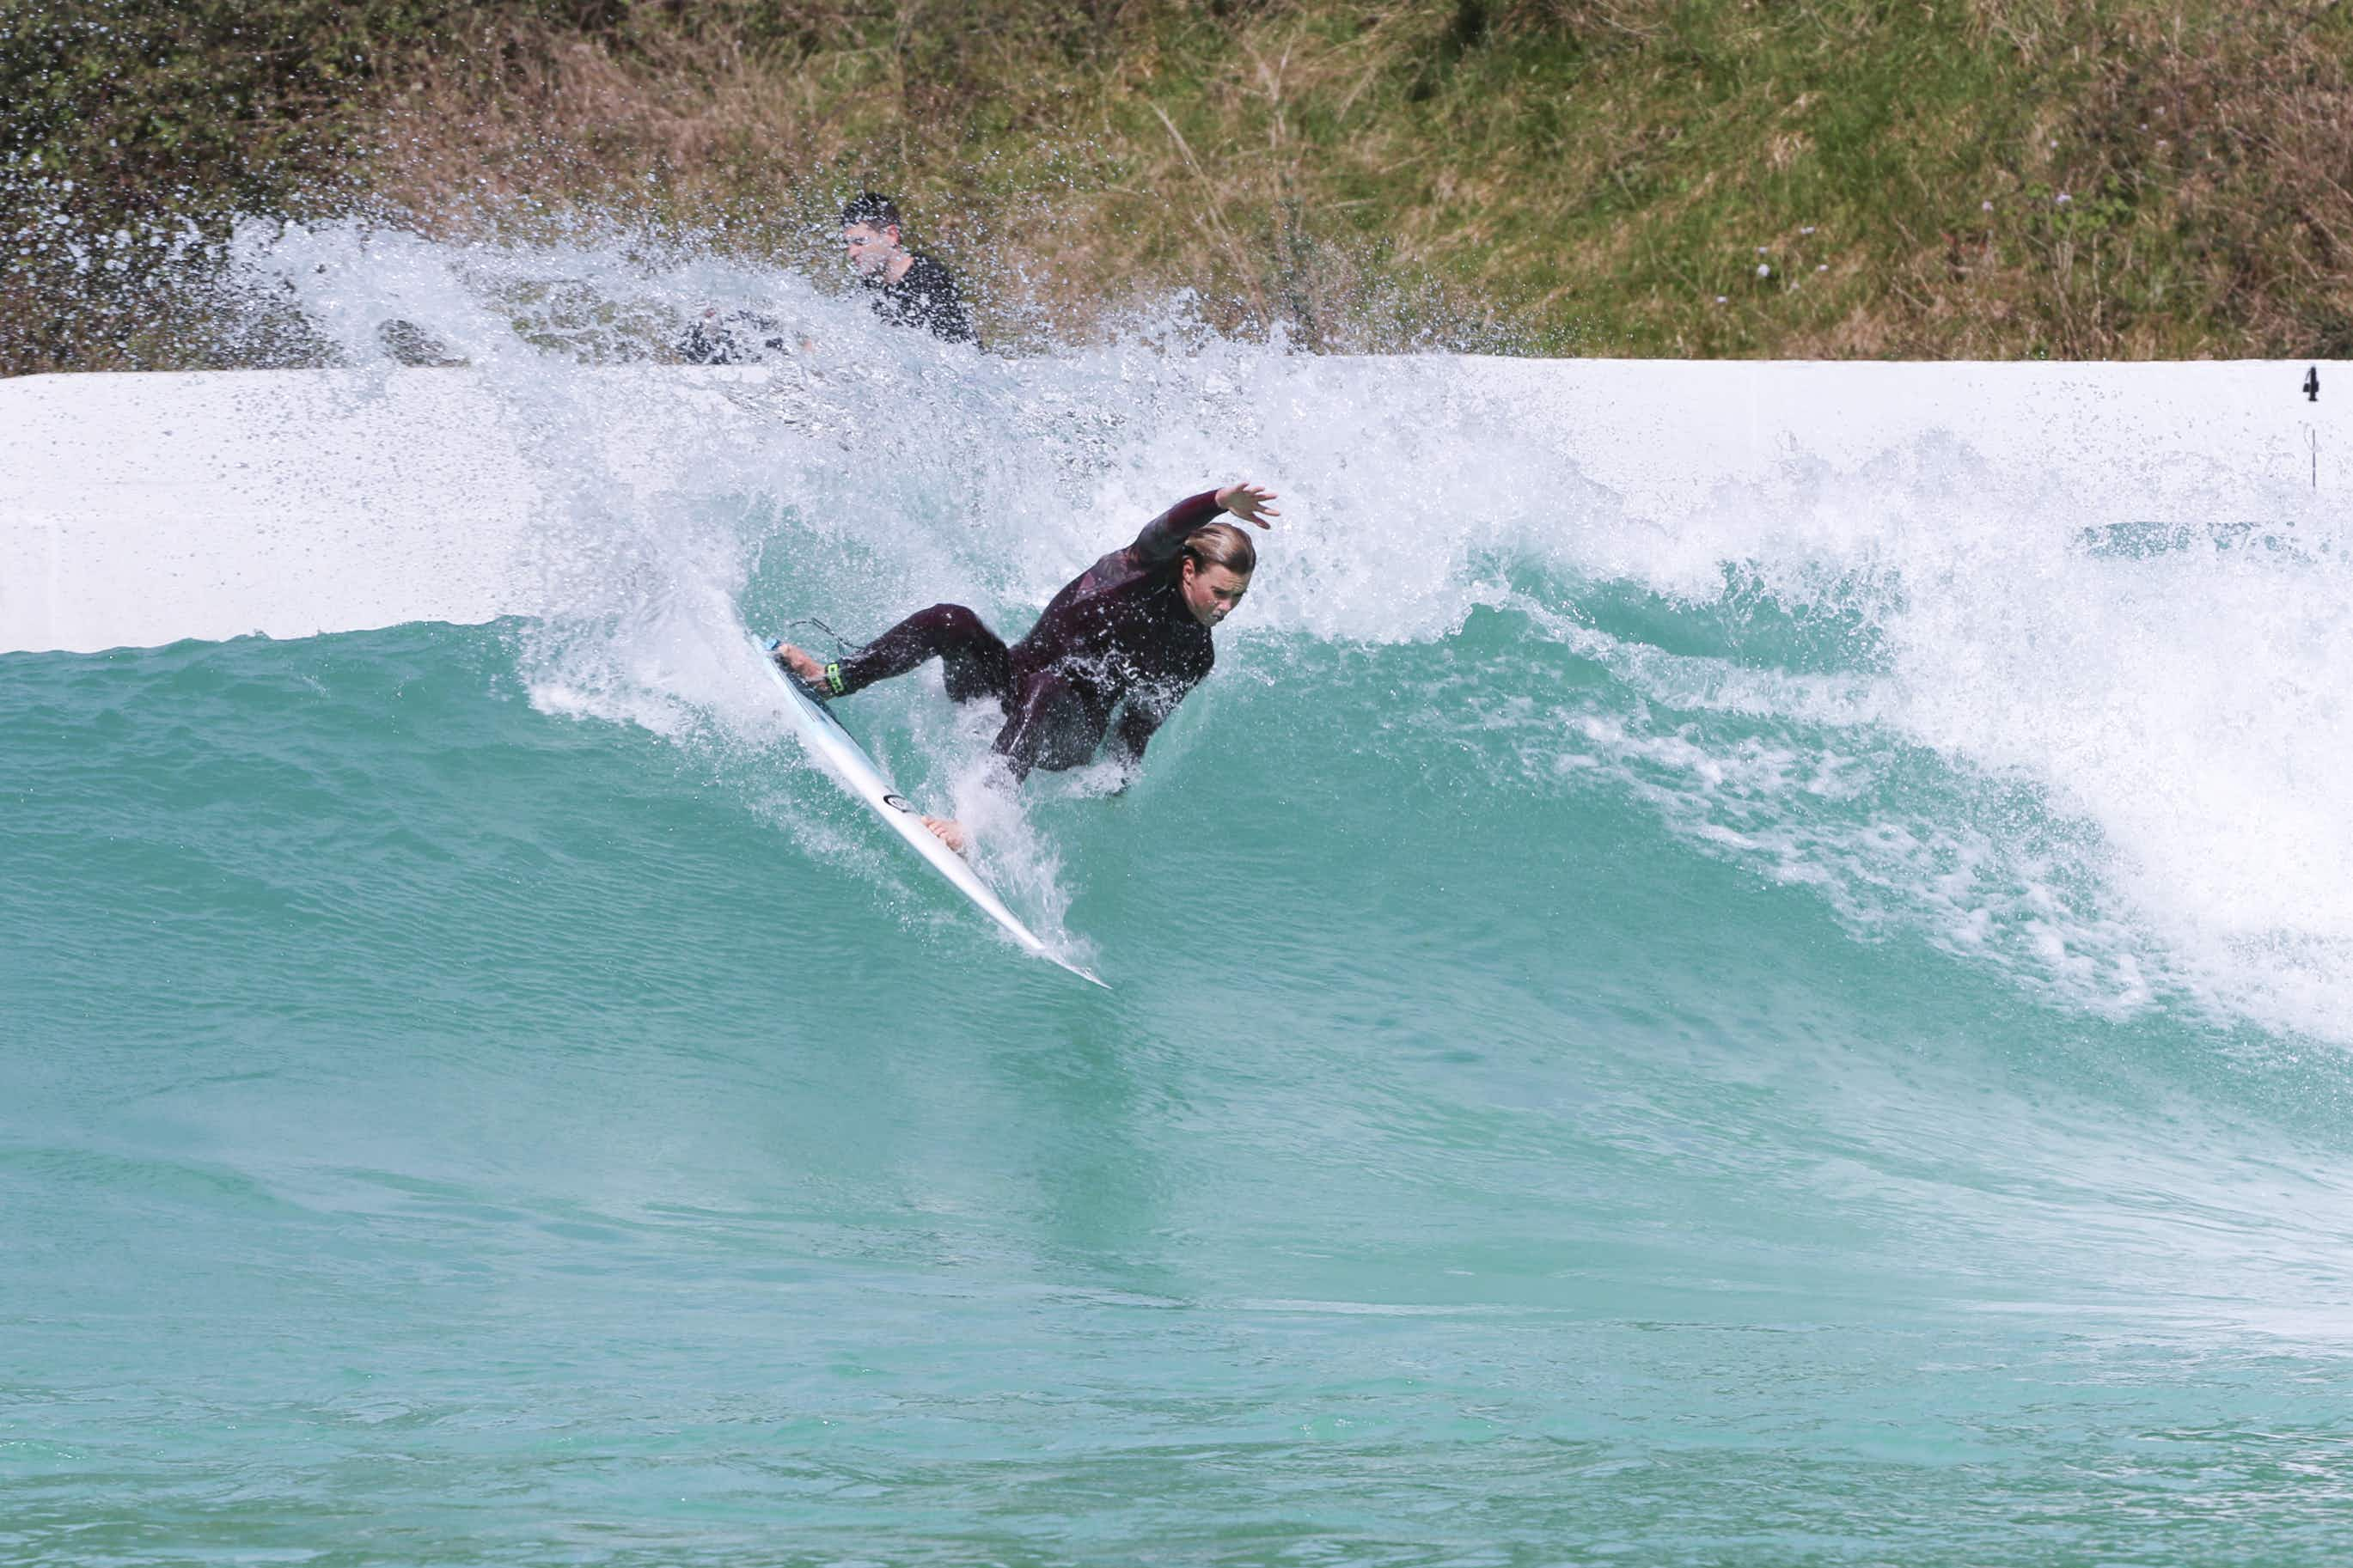 British surfer Lucy Campbell rides the waves at The Wave, a new inland surf park in Bristol ©The Wave